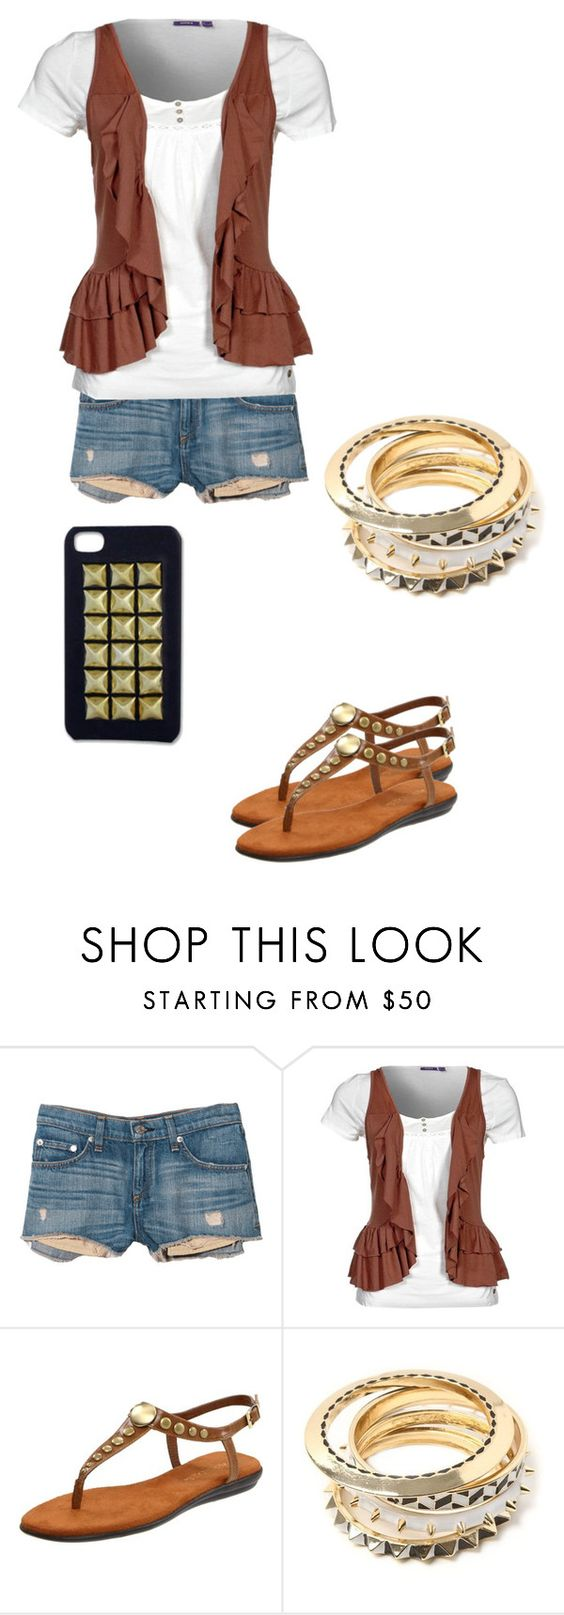 """RaysGF"" by doitlike-kayla ❤ liked on Polyvore featuring rag & bone, Mexx, Aerosoles and Jagger Edge"